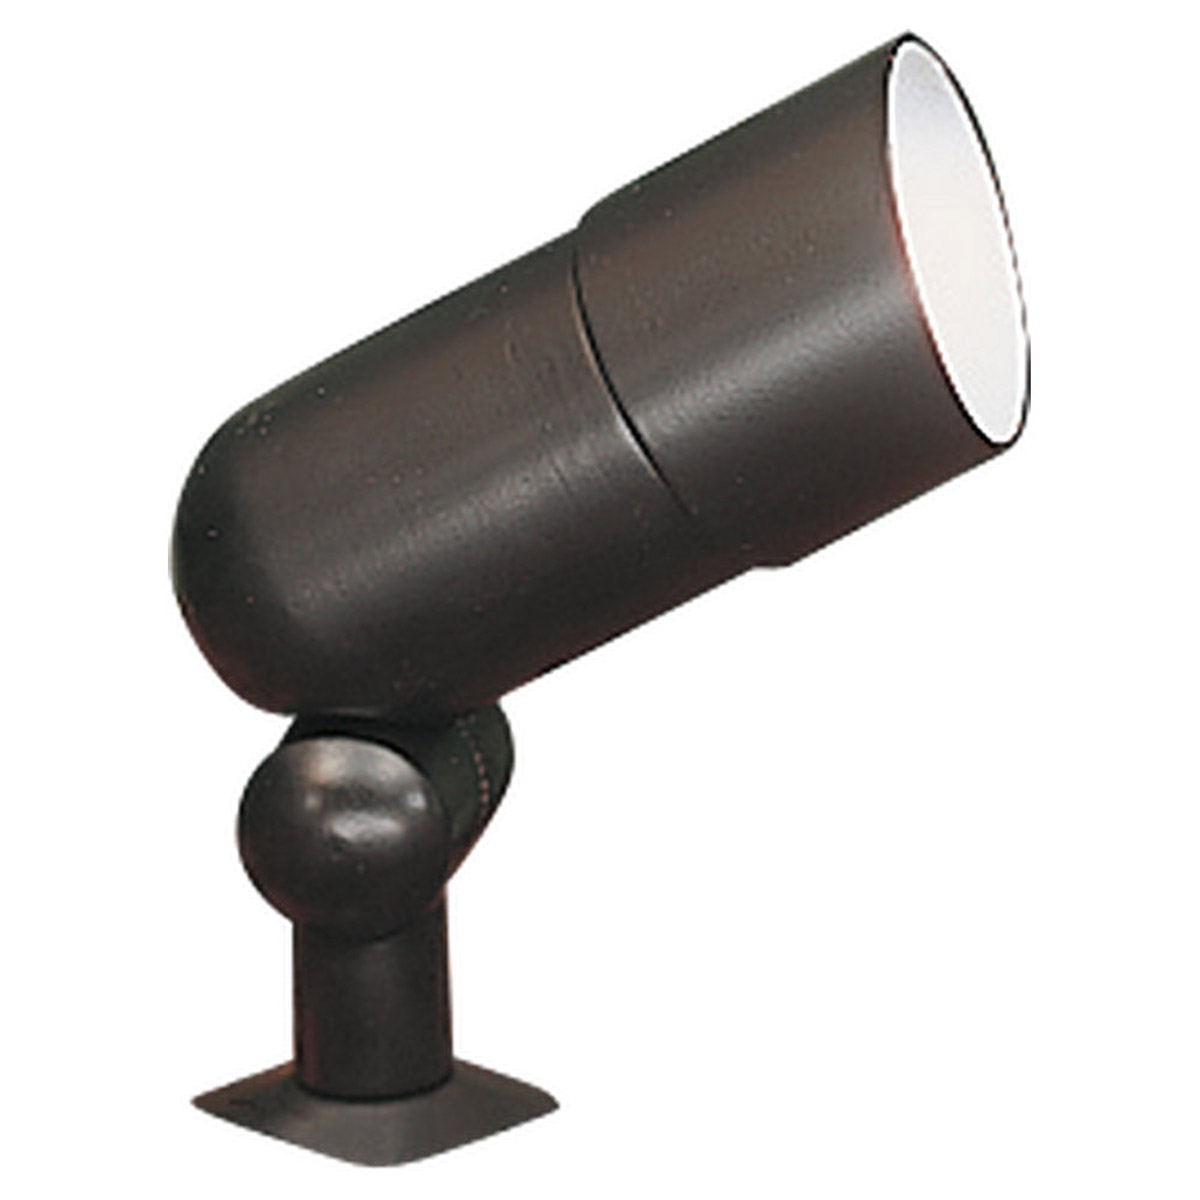 Sea Gull Lighting Landscape Lighting 120 Volt Die-Cast Landscape Accent Light in Black 9312-12